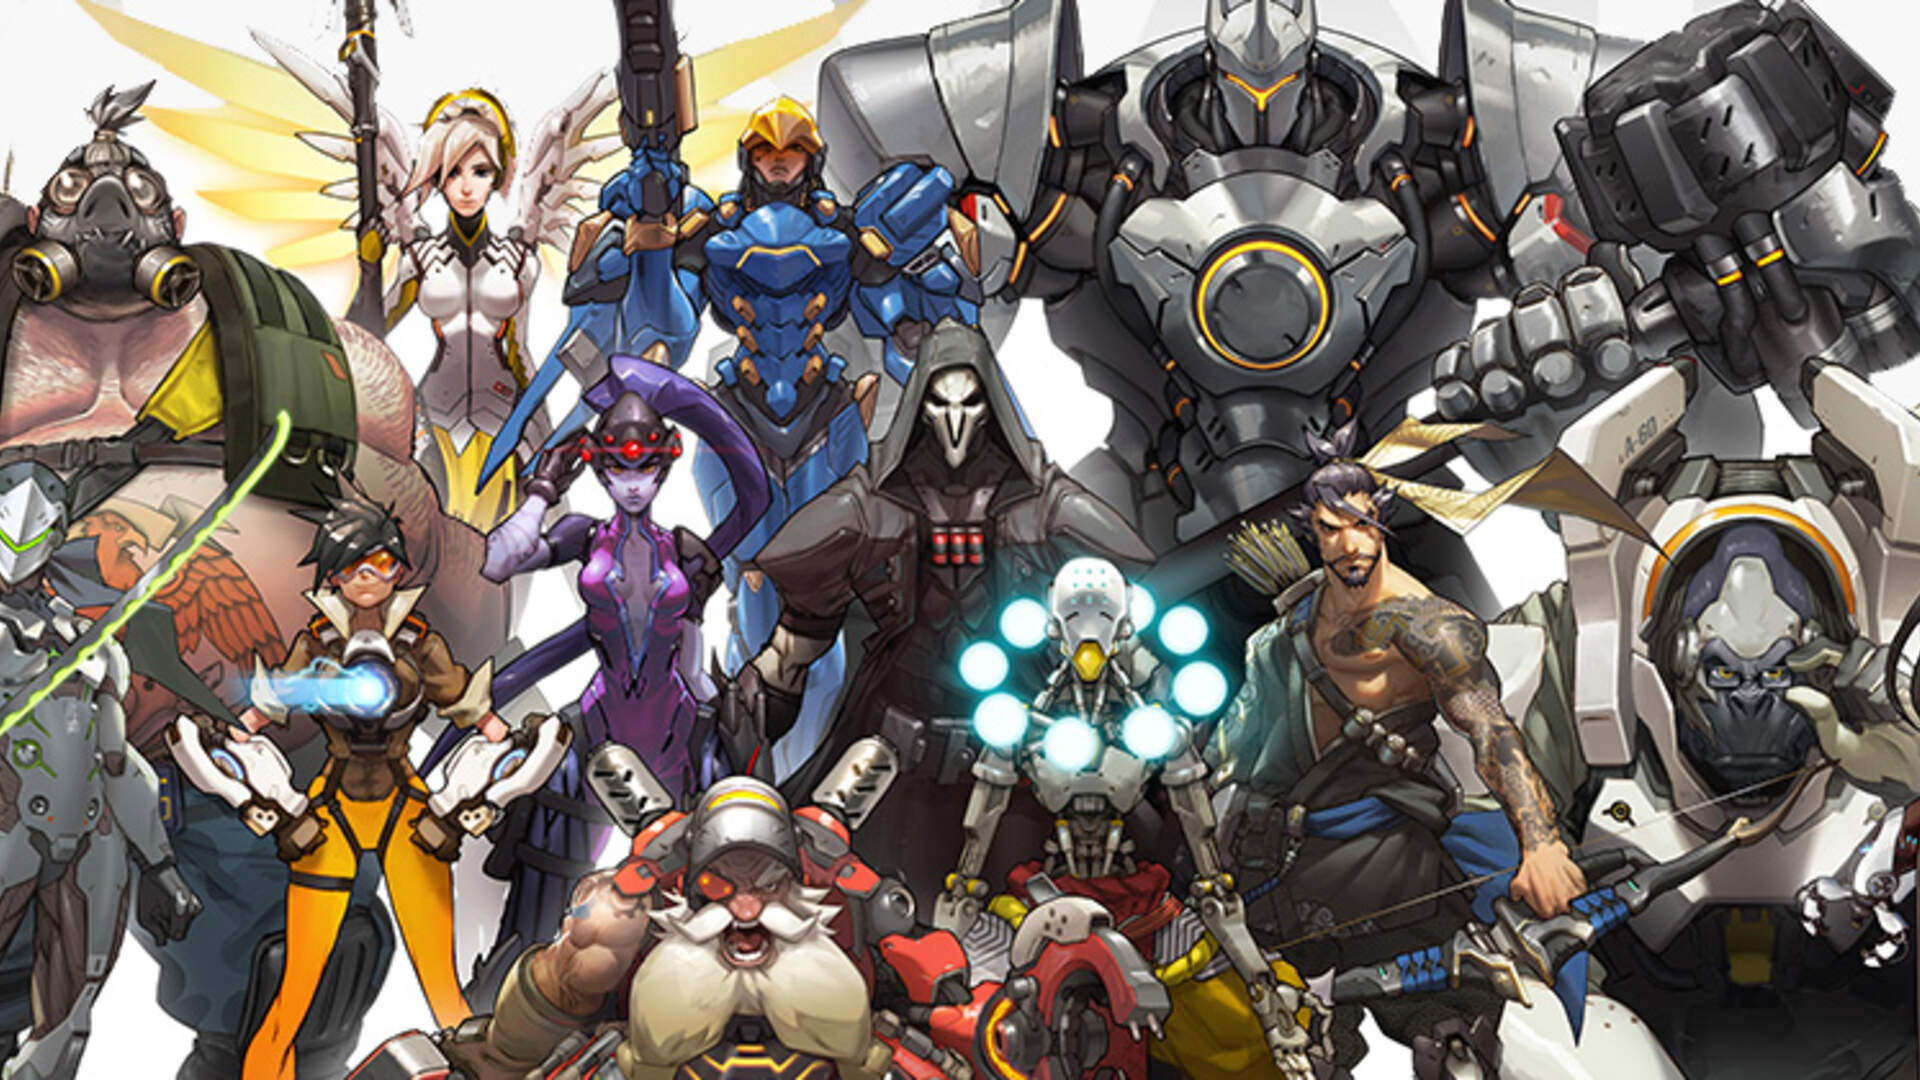 Kat and Mike Answer Five Questions About Overwatch, Blizzard's Surprising Shooter